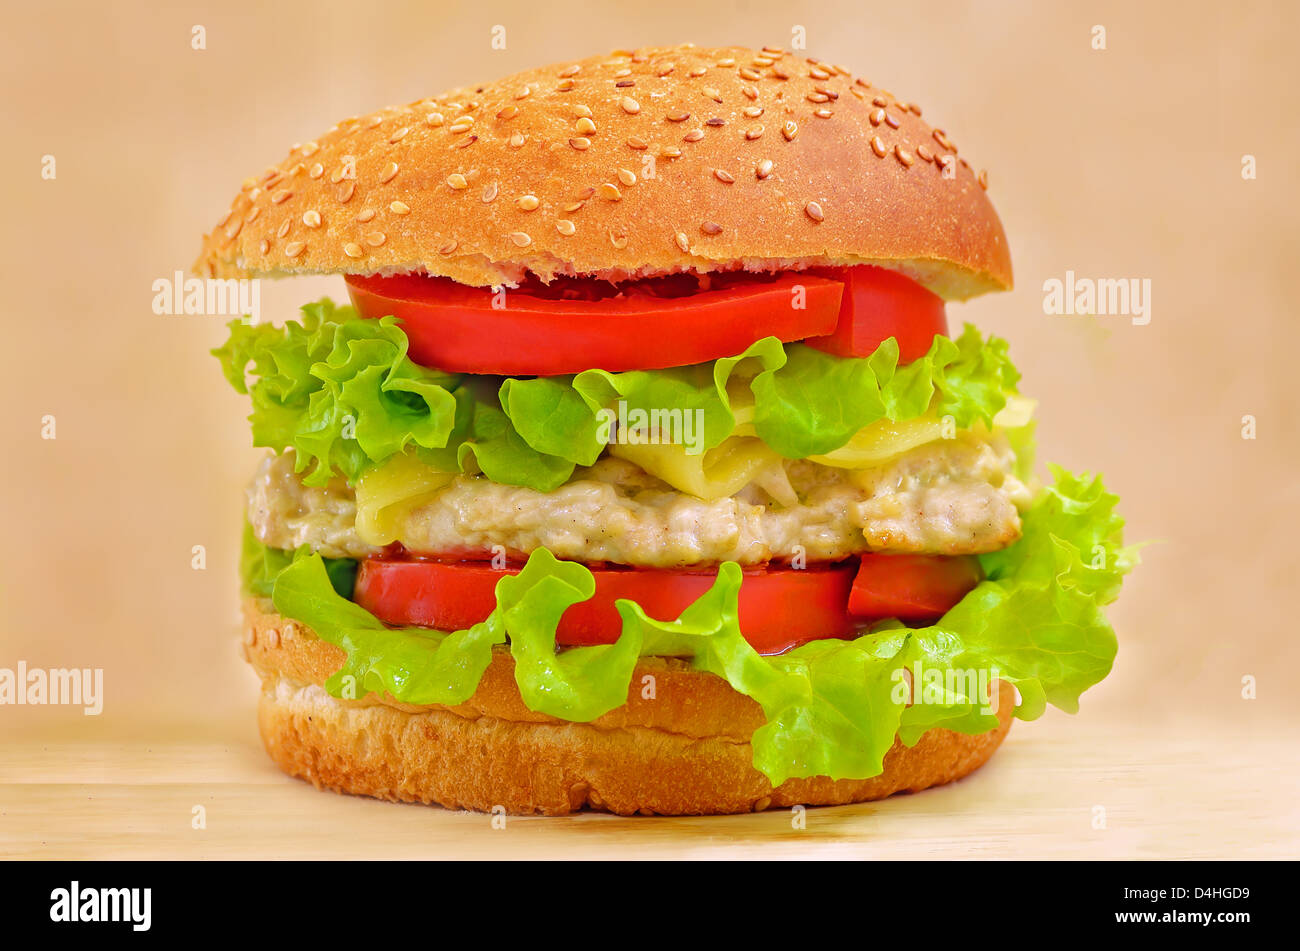 Burger fast food on a wooden table - Stock Image